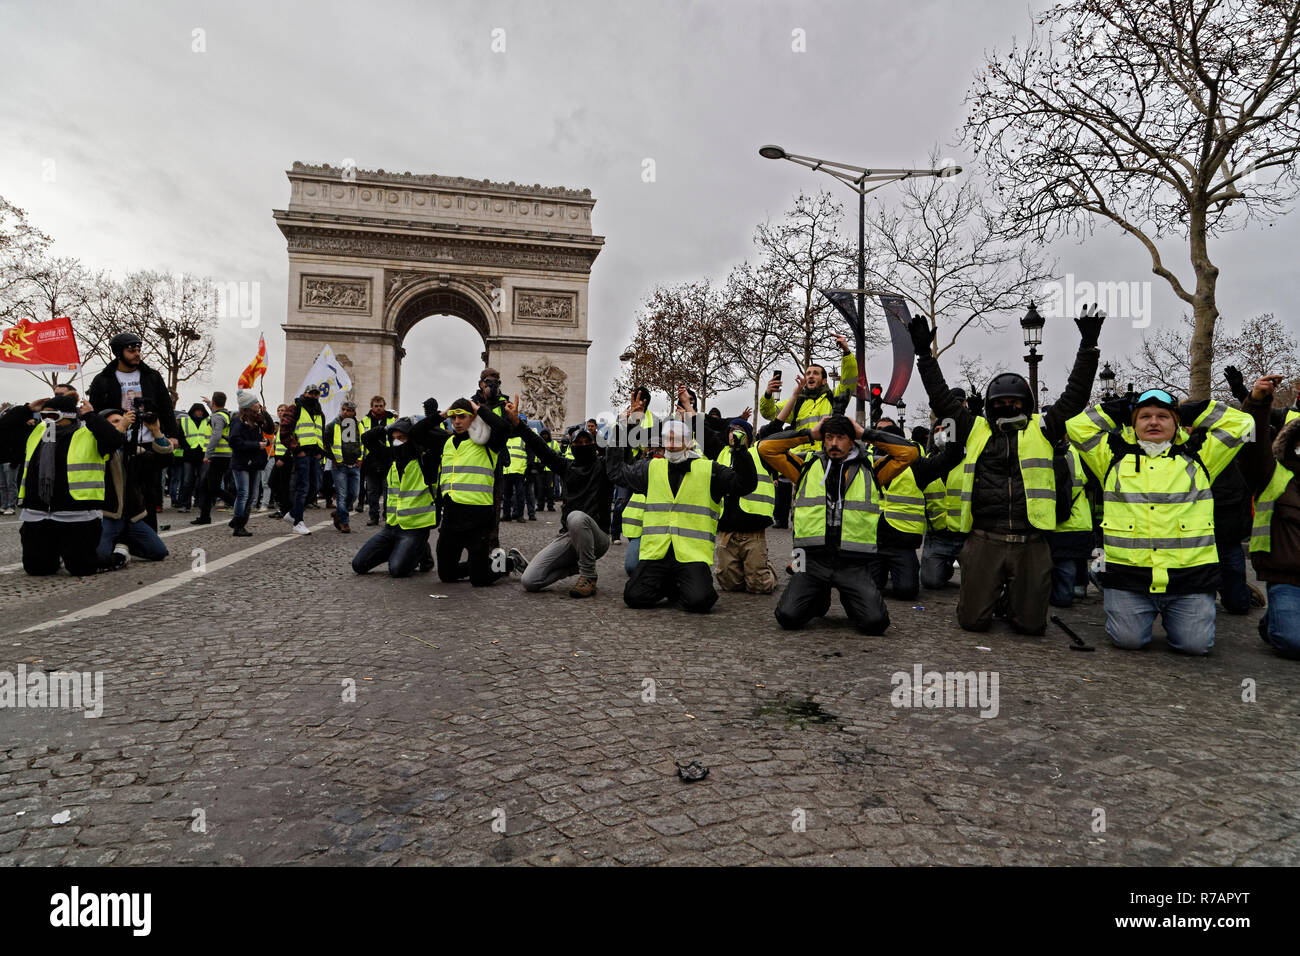 Paris, France. 8th Dec, 2018. The yellow vests invest the Champs-Élysées and clash with the riot police on December 8, 2018 in Paris, France. Credit: Bernard Menigault/Alamy Live News Stock Photo